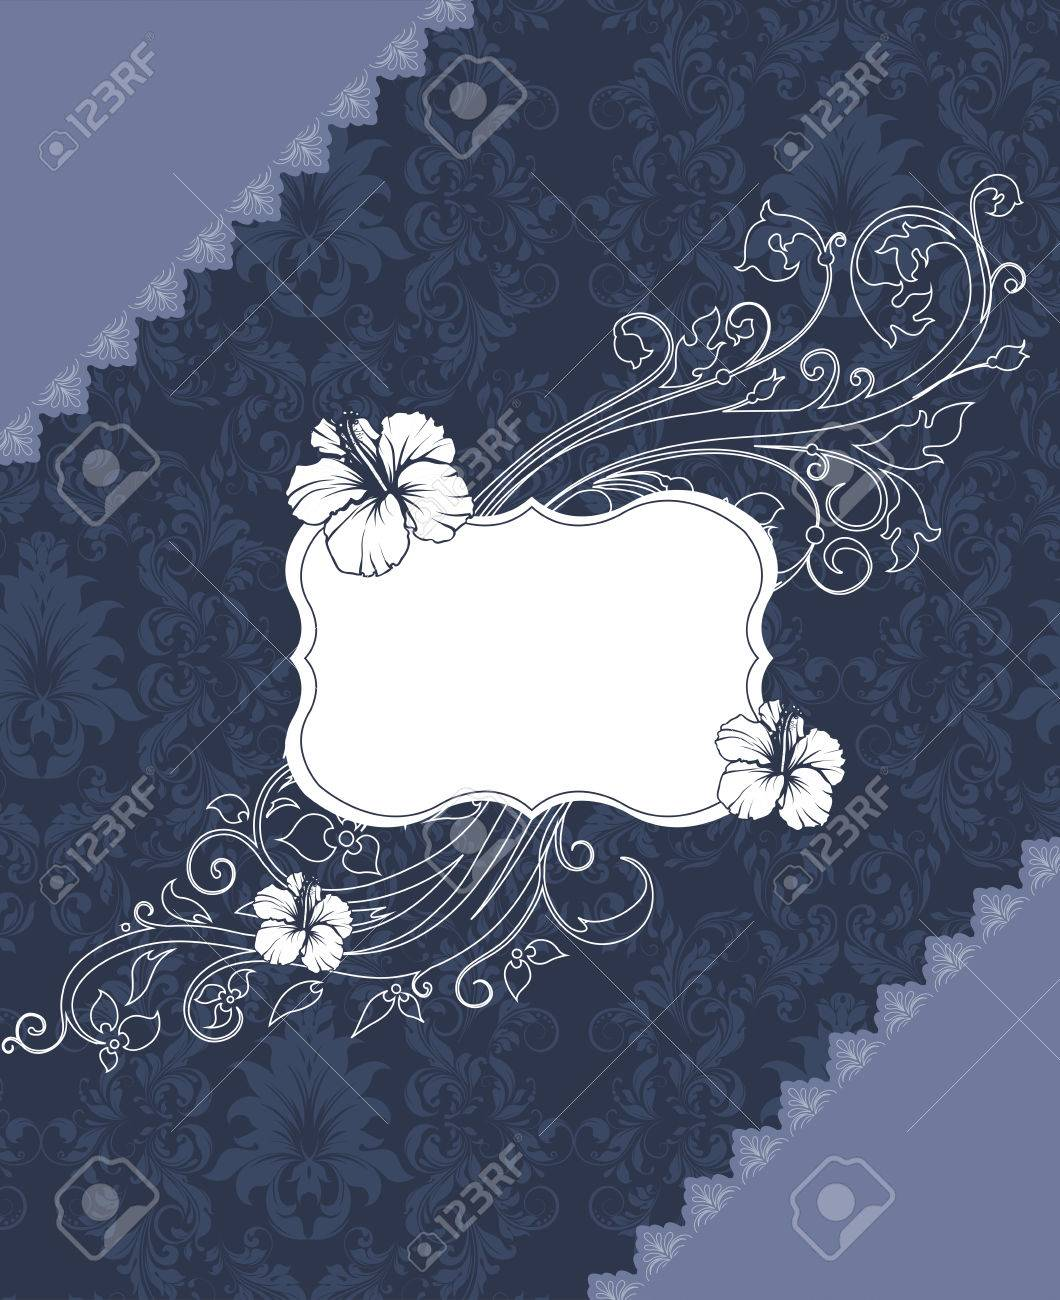 Vintage invitation card with ornate elegant retro abstract floral vector vintage invitation card with ornate elegant retro abstract floral design white grayish blue flowers and leaves on midnight blue and gray izmirmasajfo